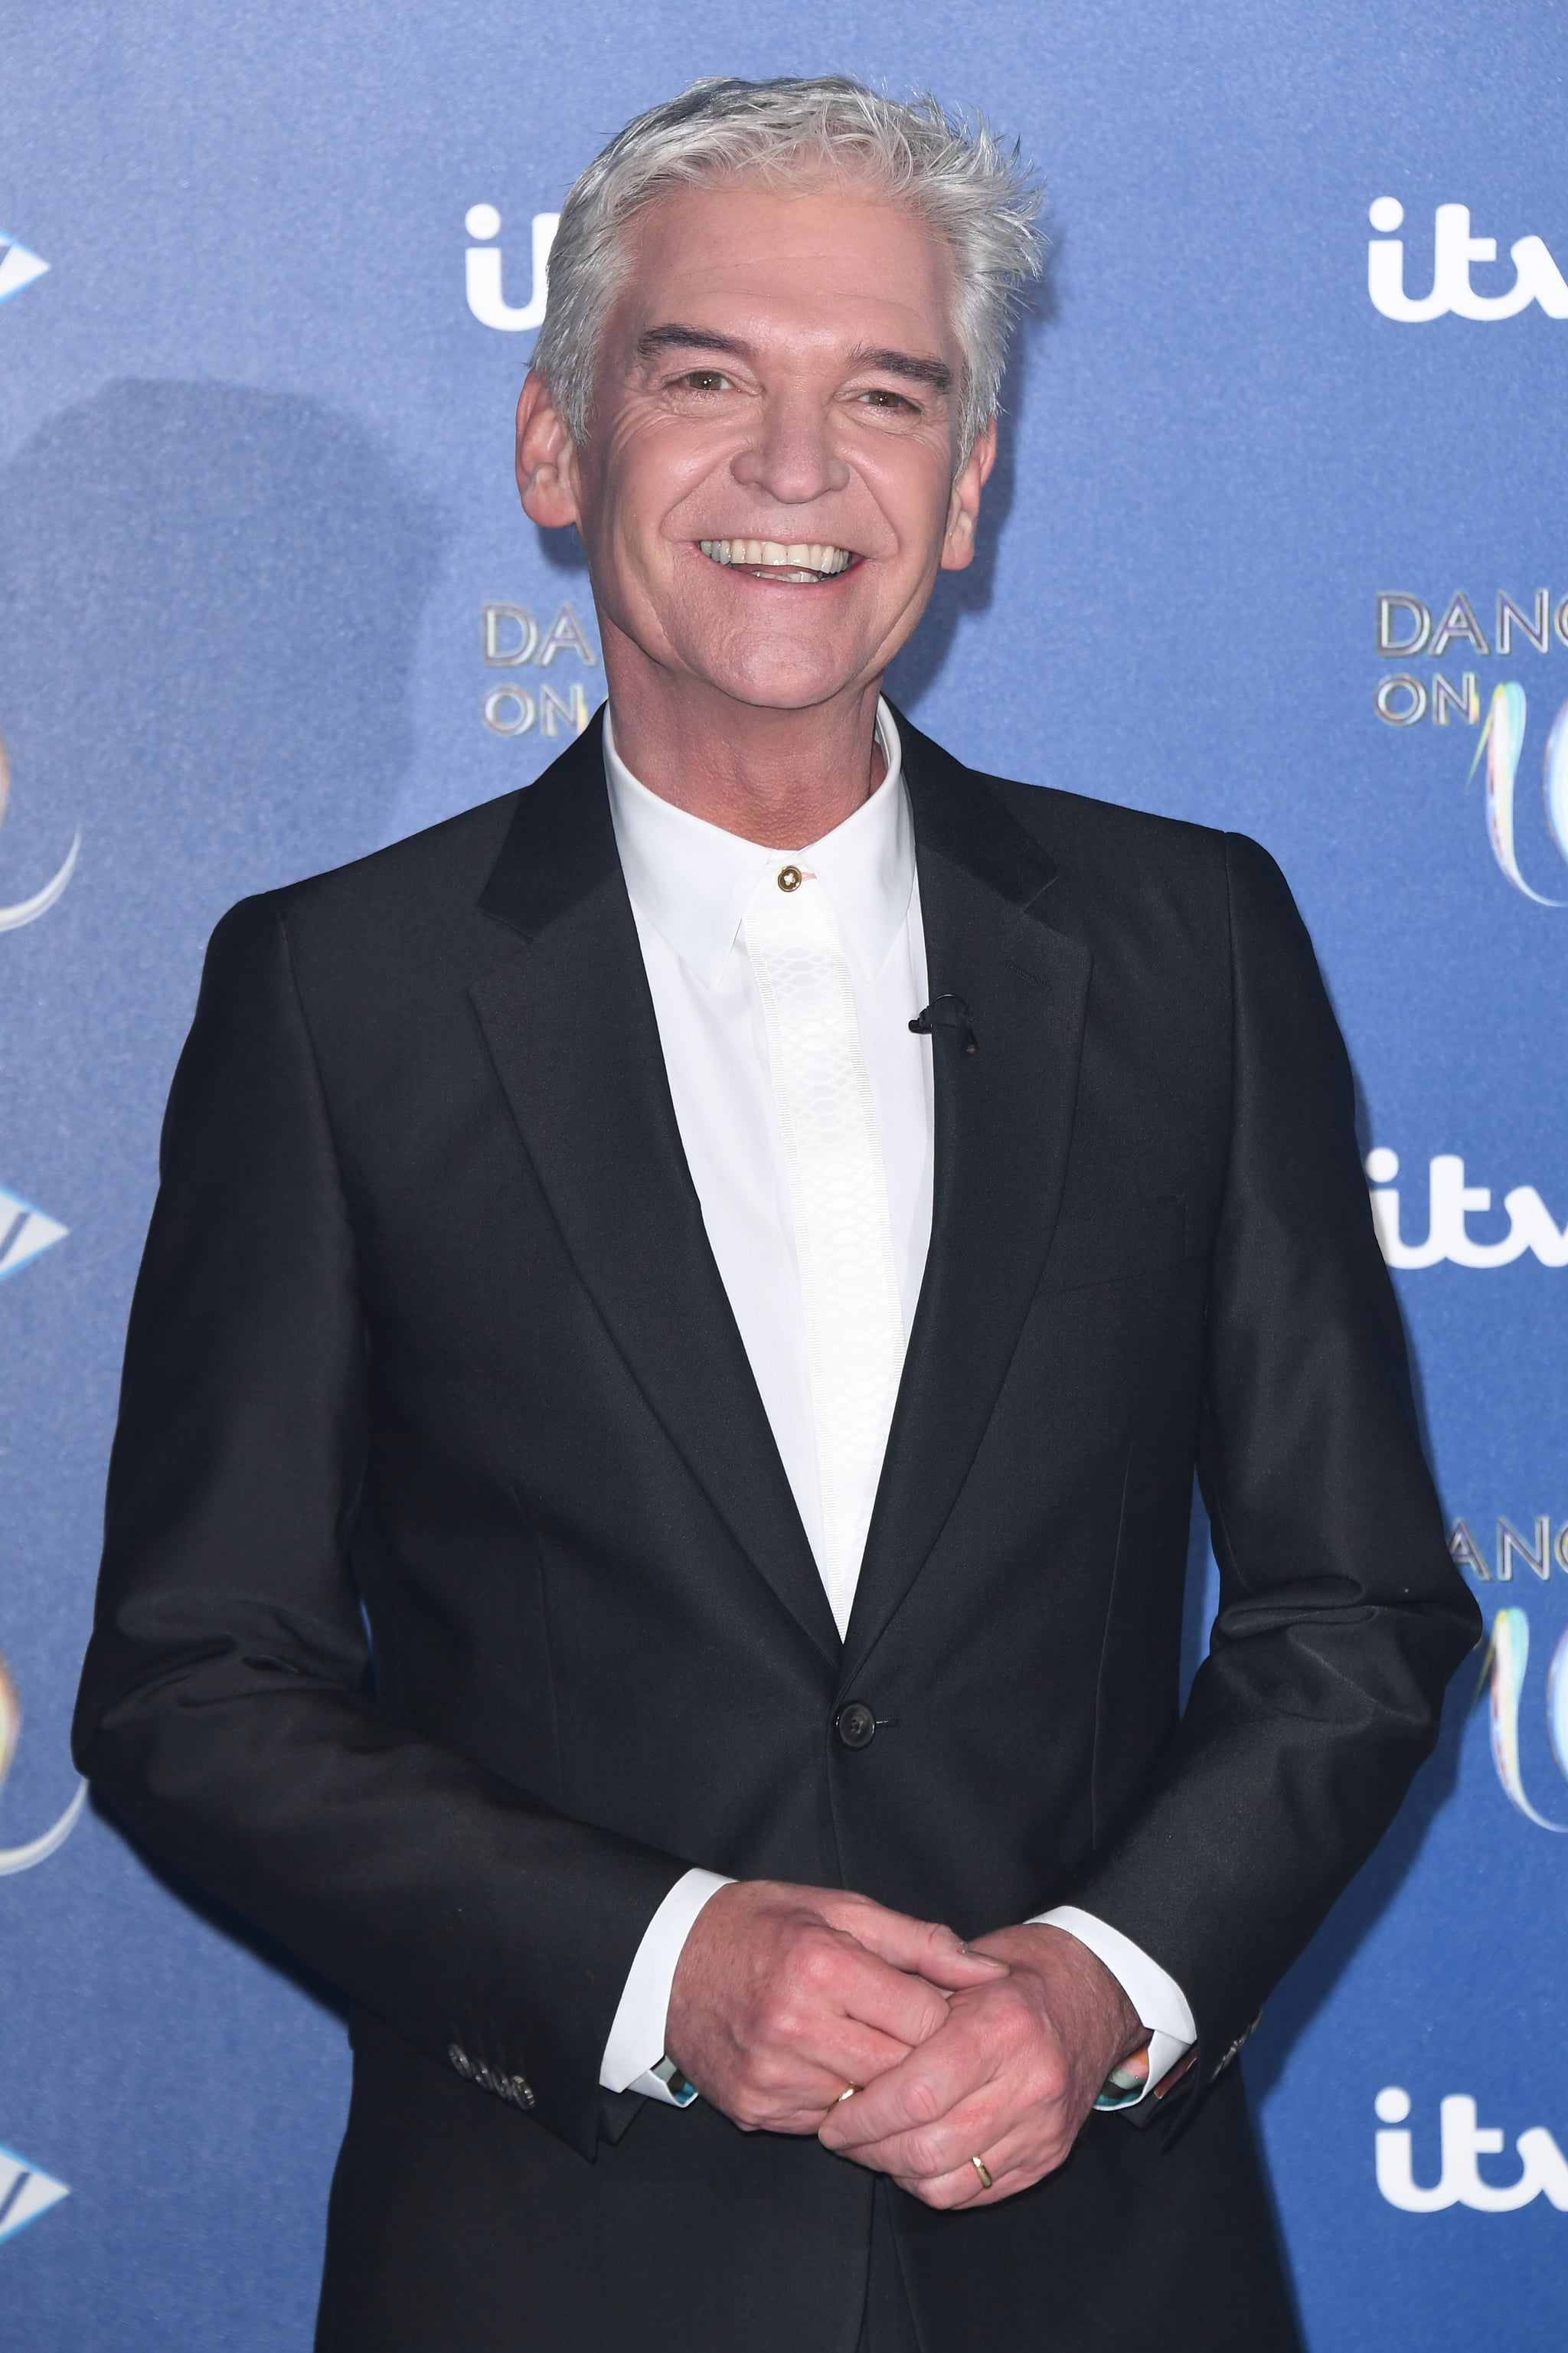 LONDON, ENGLAND - DECEMBER 09: Phillip Schofield during the Dancing On Ice 2019 photocall at ITV Studios on December 09, 2019 in London, England. (Photo by Stuart C. Wilson/Getty Images)